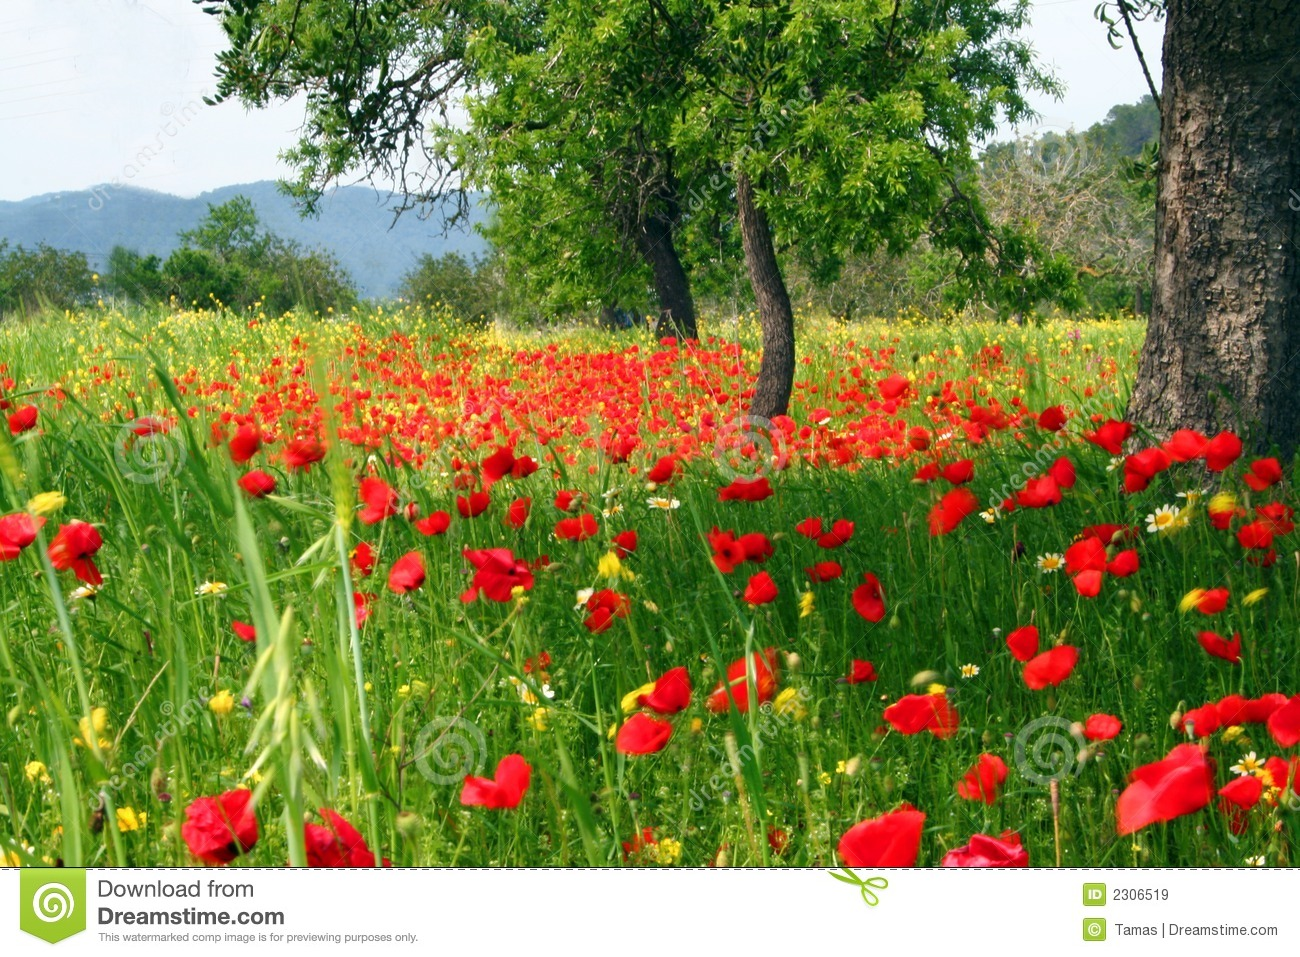 Poppy flower field at night royalty free stock photography image - Country Field Of Poppy Flowers Royalty Free Stock Images